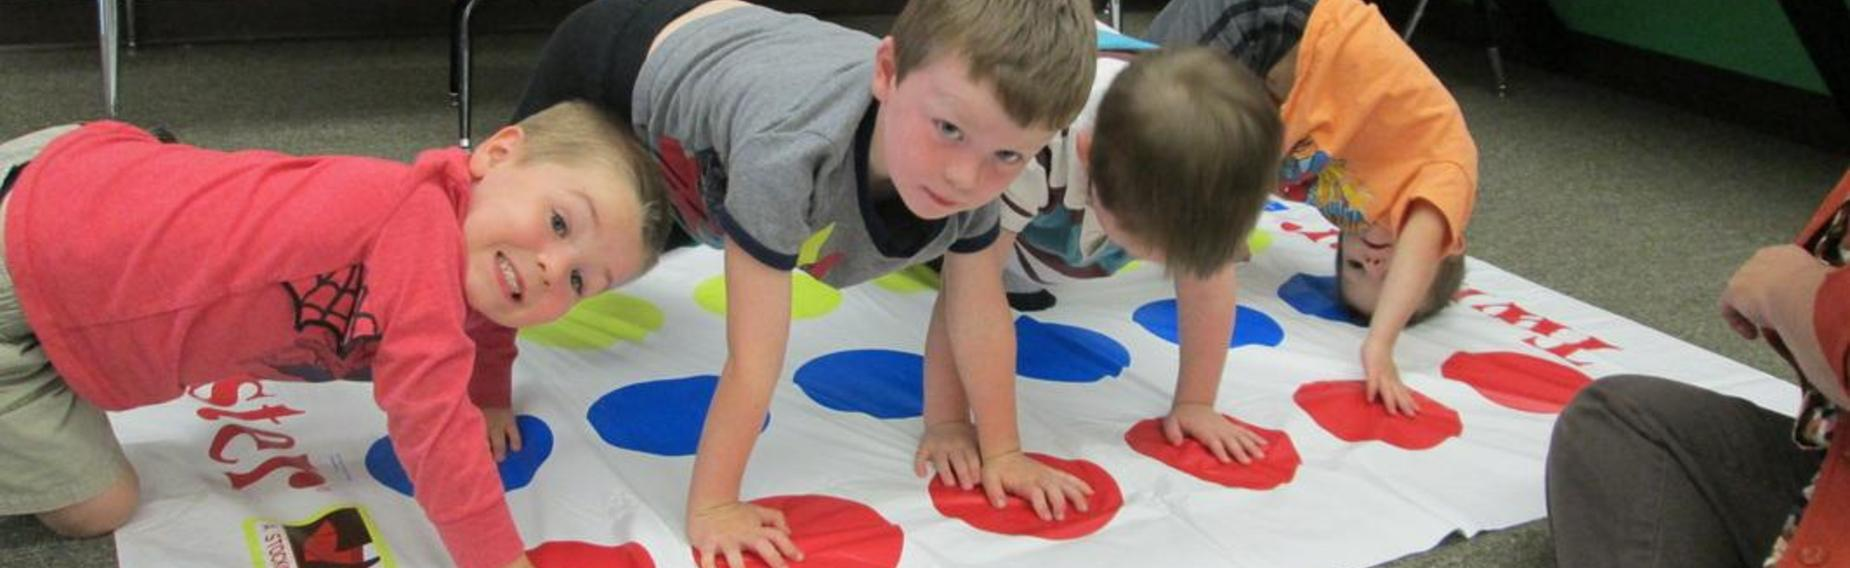 Four preschool children playing a game of Twister.